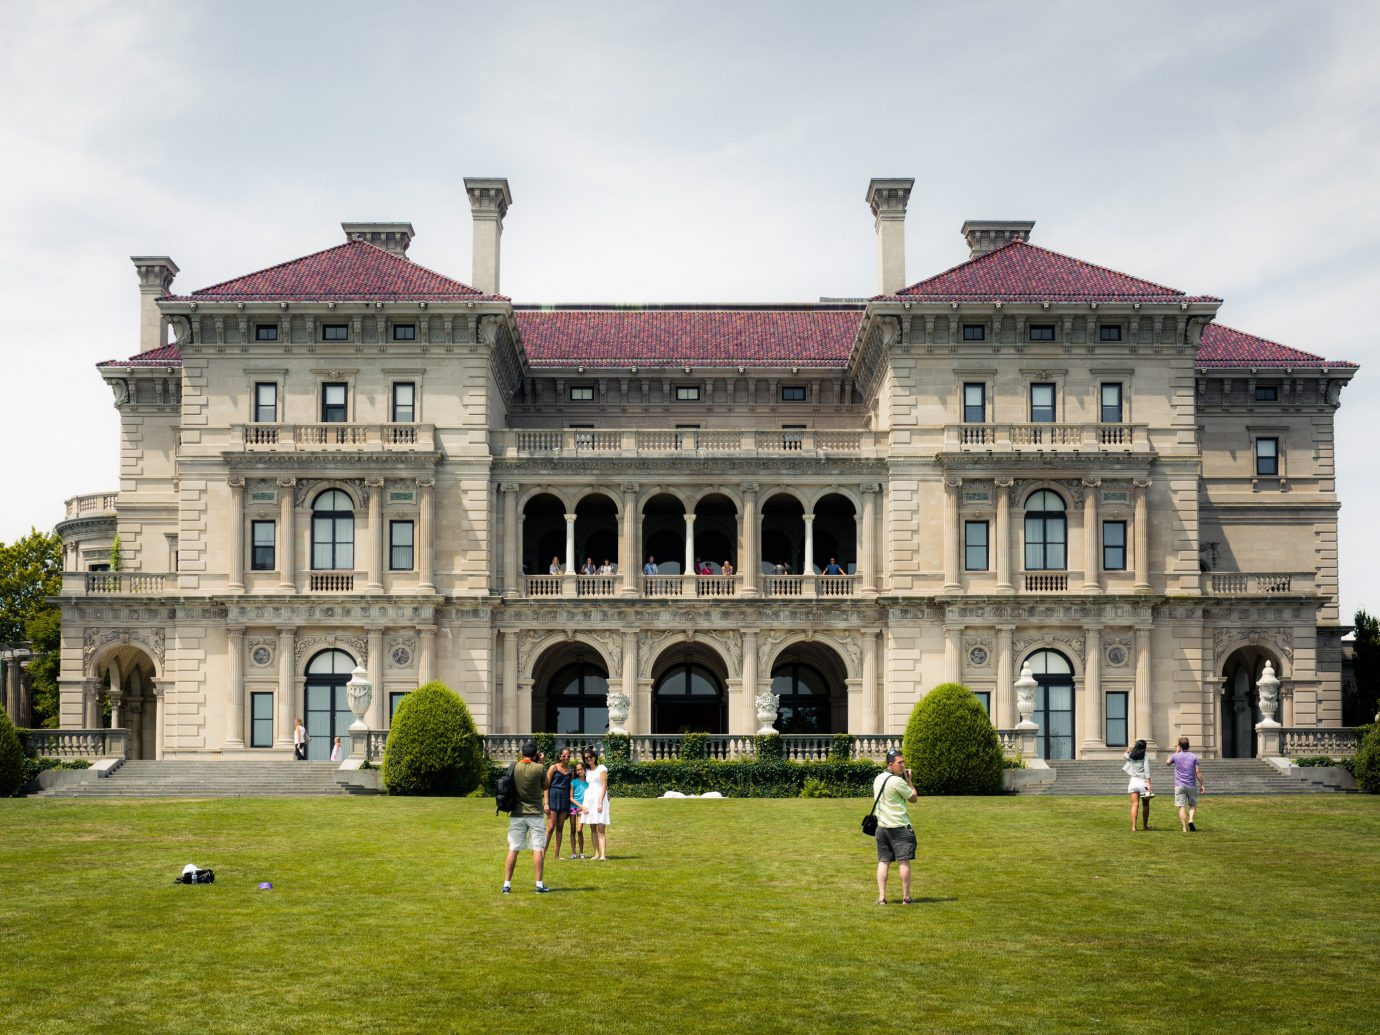 Trip Ideas grass sky building outdoor field stately home house château green estate landmark palace lawn Architecture manor house mansion facade monastery grassy castle old government building stone